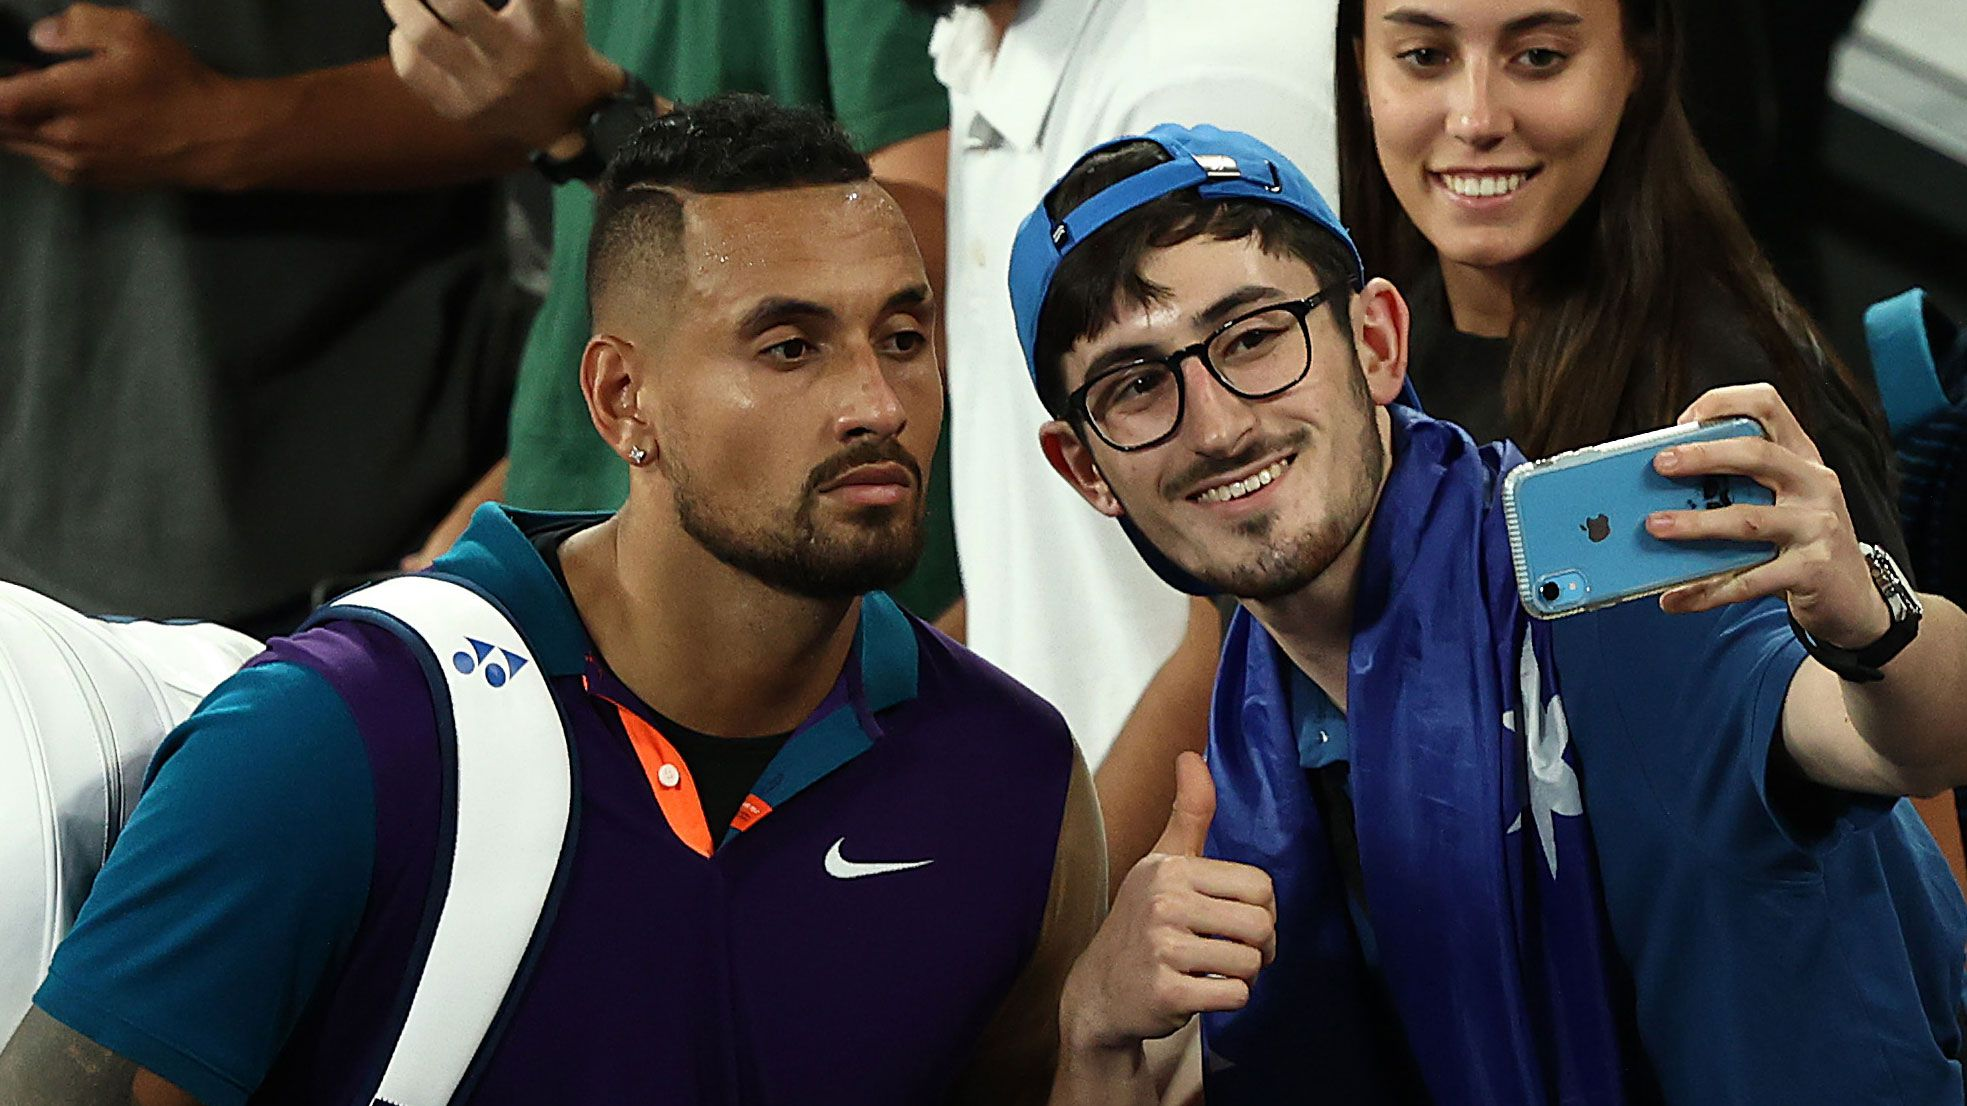 Nick Kyrgios takes a selfie with a fan after his Australian Open win over Ugo Humbert.